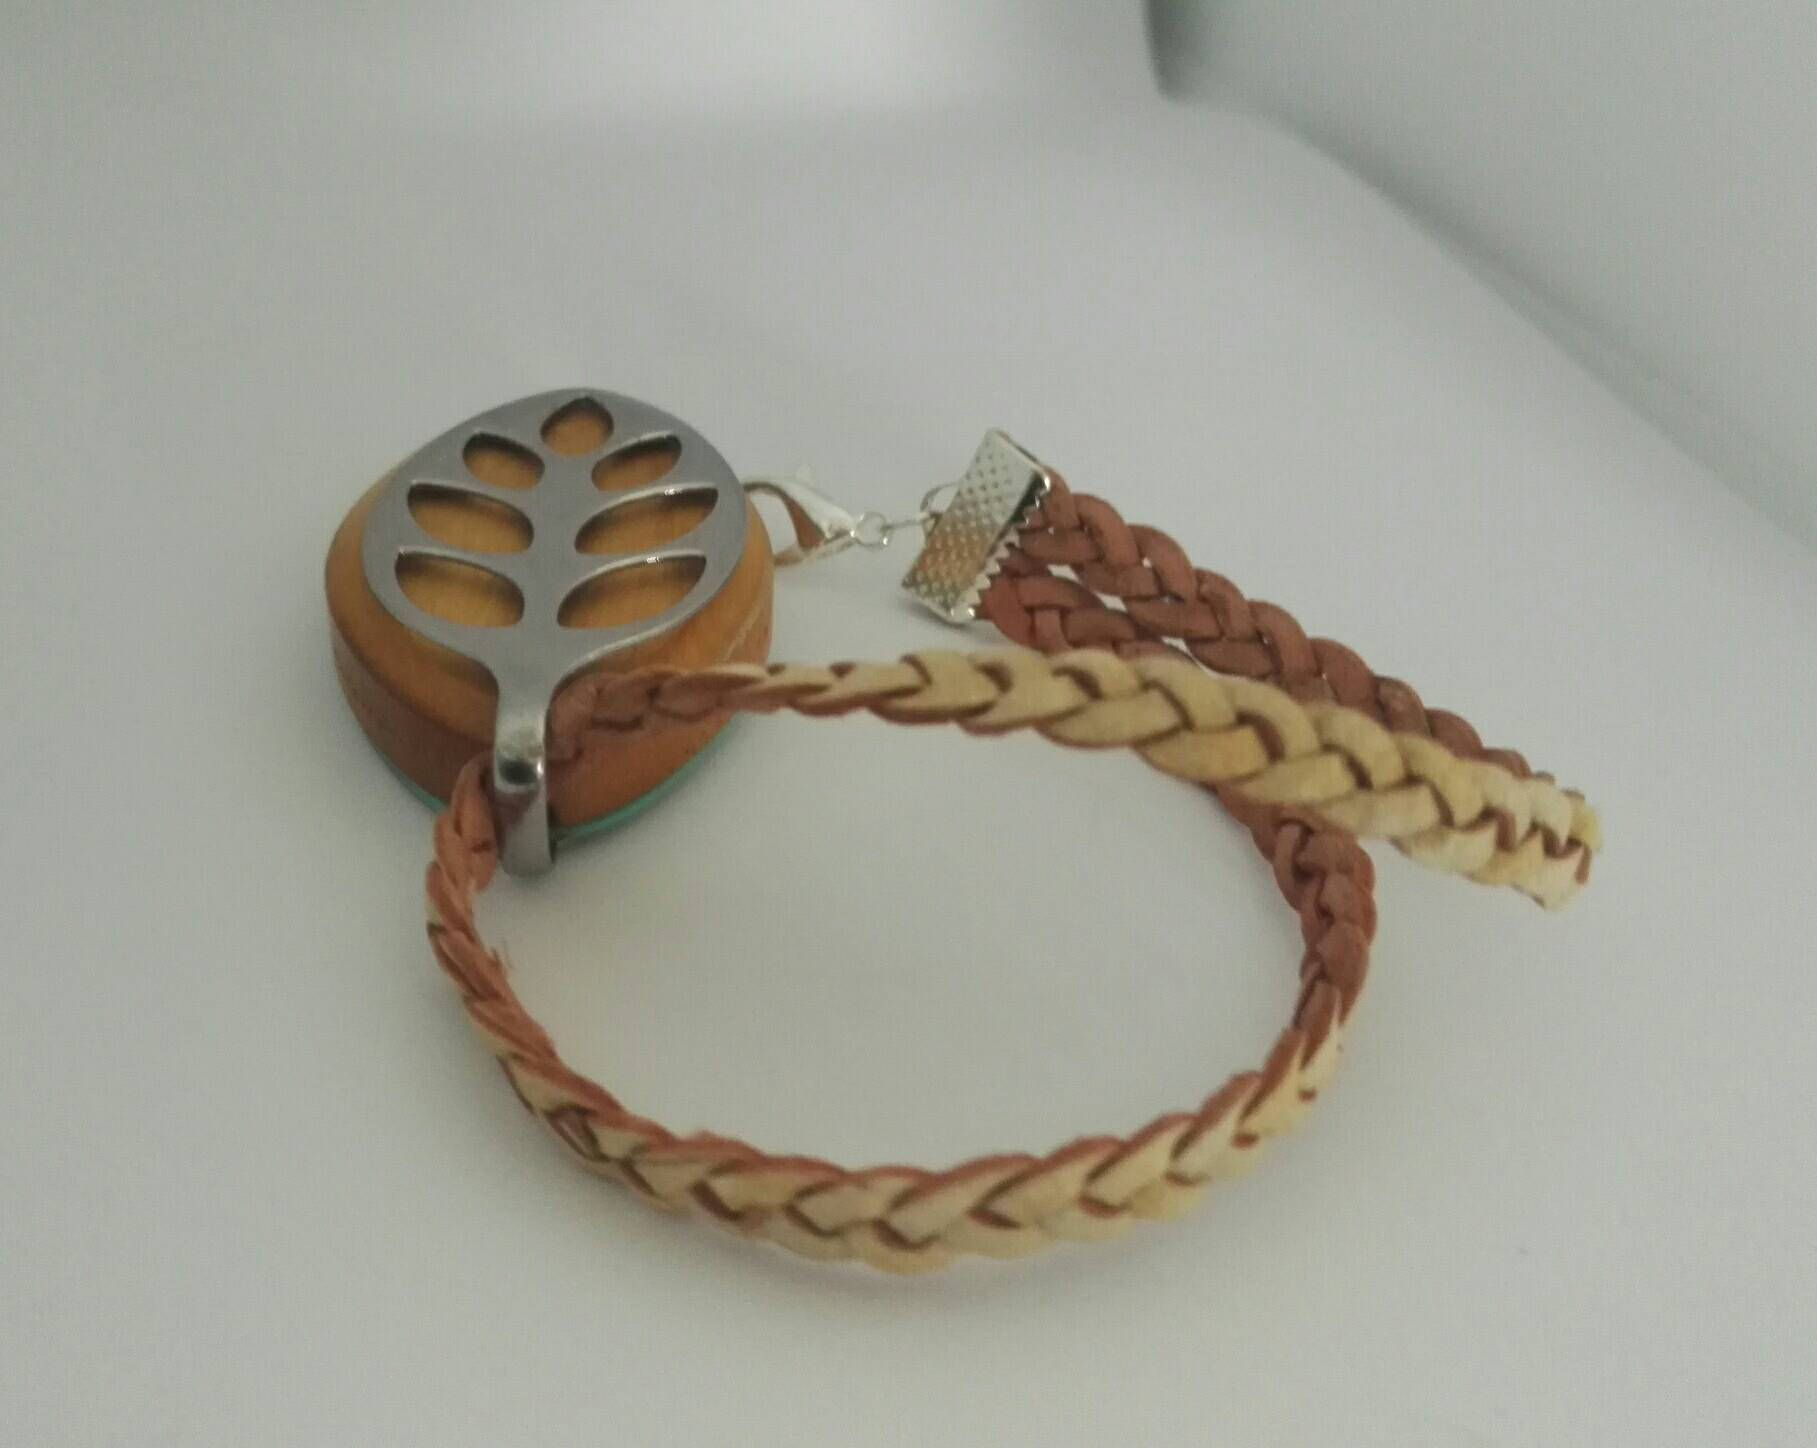 Bellabeat bracelet with double strand braided leather strap to use with Bellabeat Leaf silver bellabeat anklet